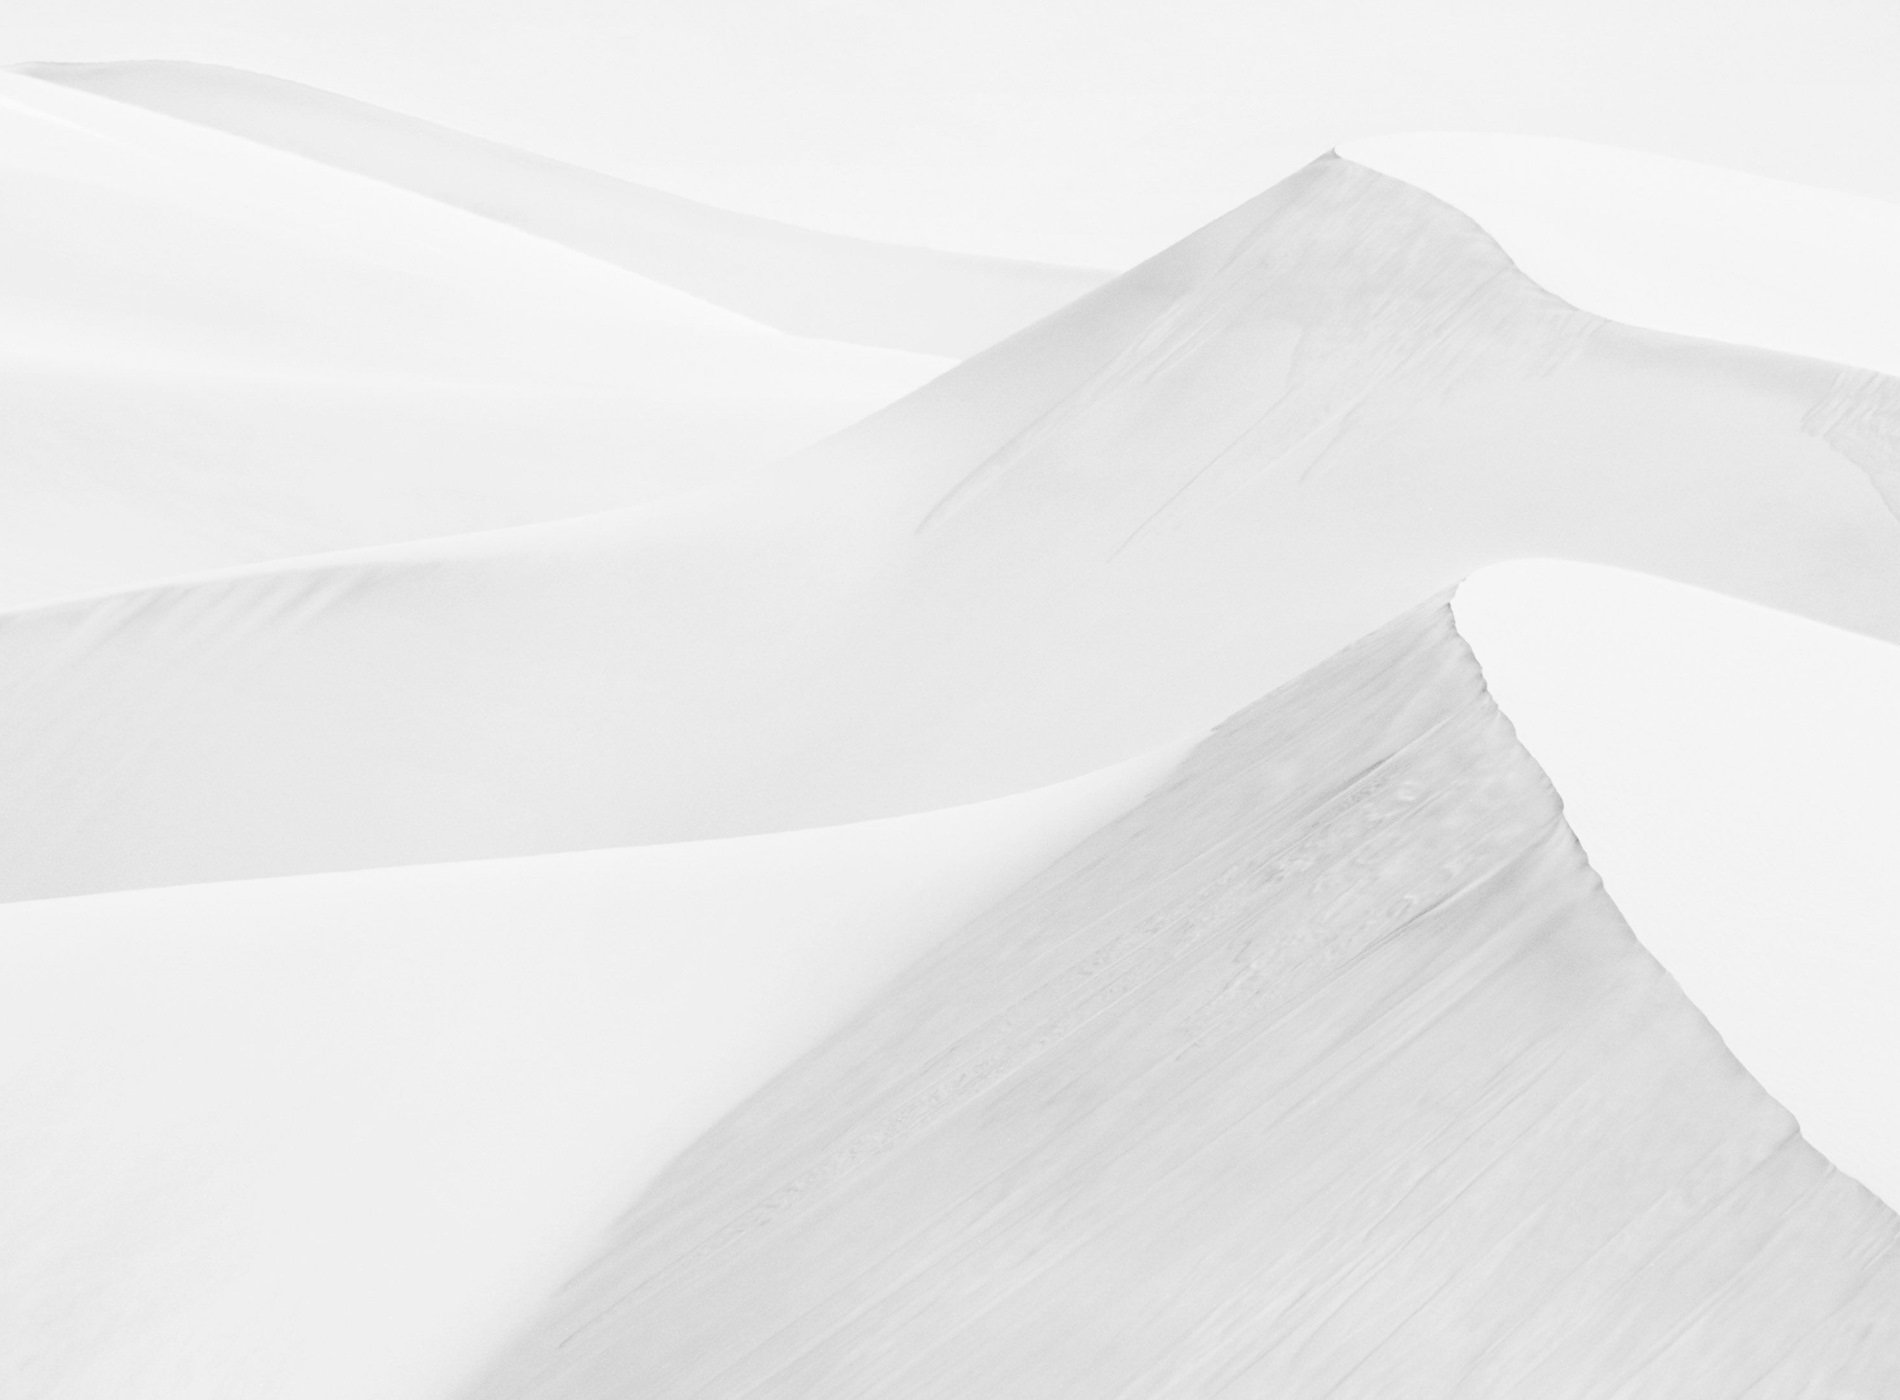 Dunes Landscapes Evolving Drew Doggett